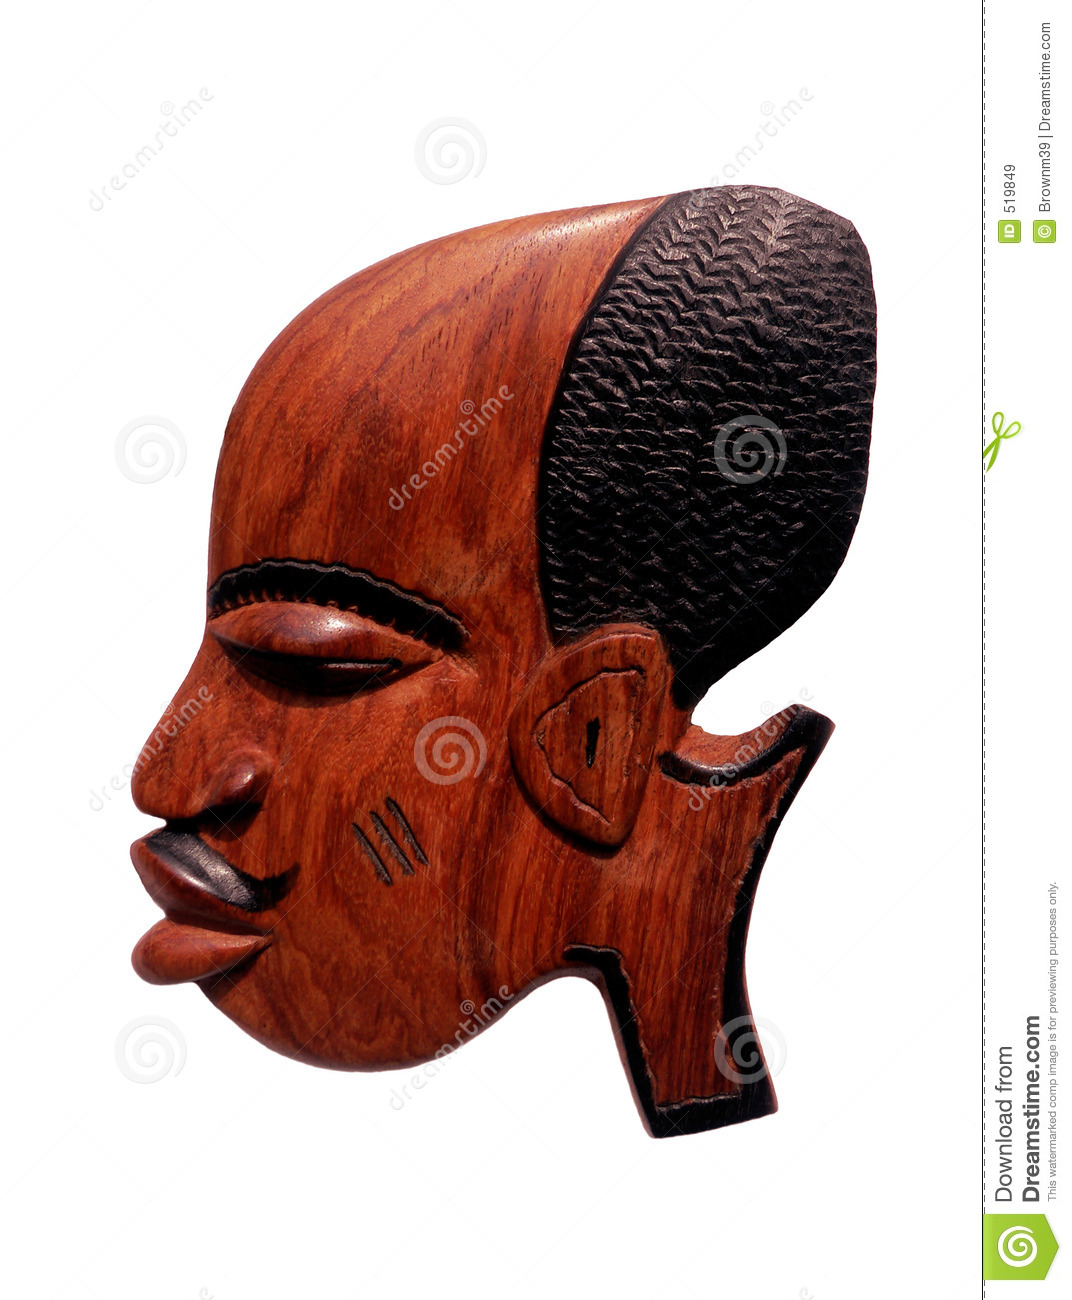 African wood carving royalty free stock images image